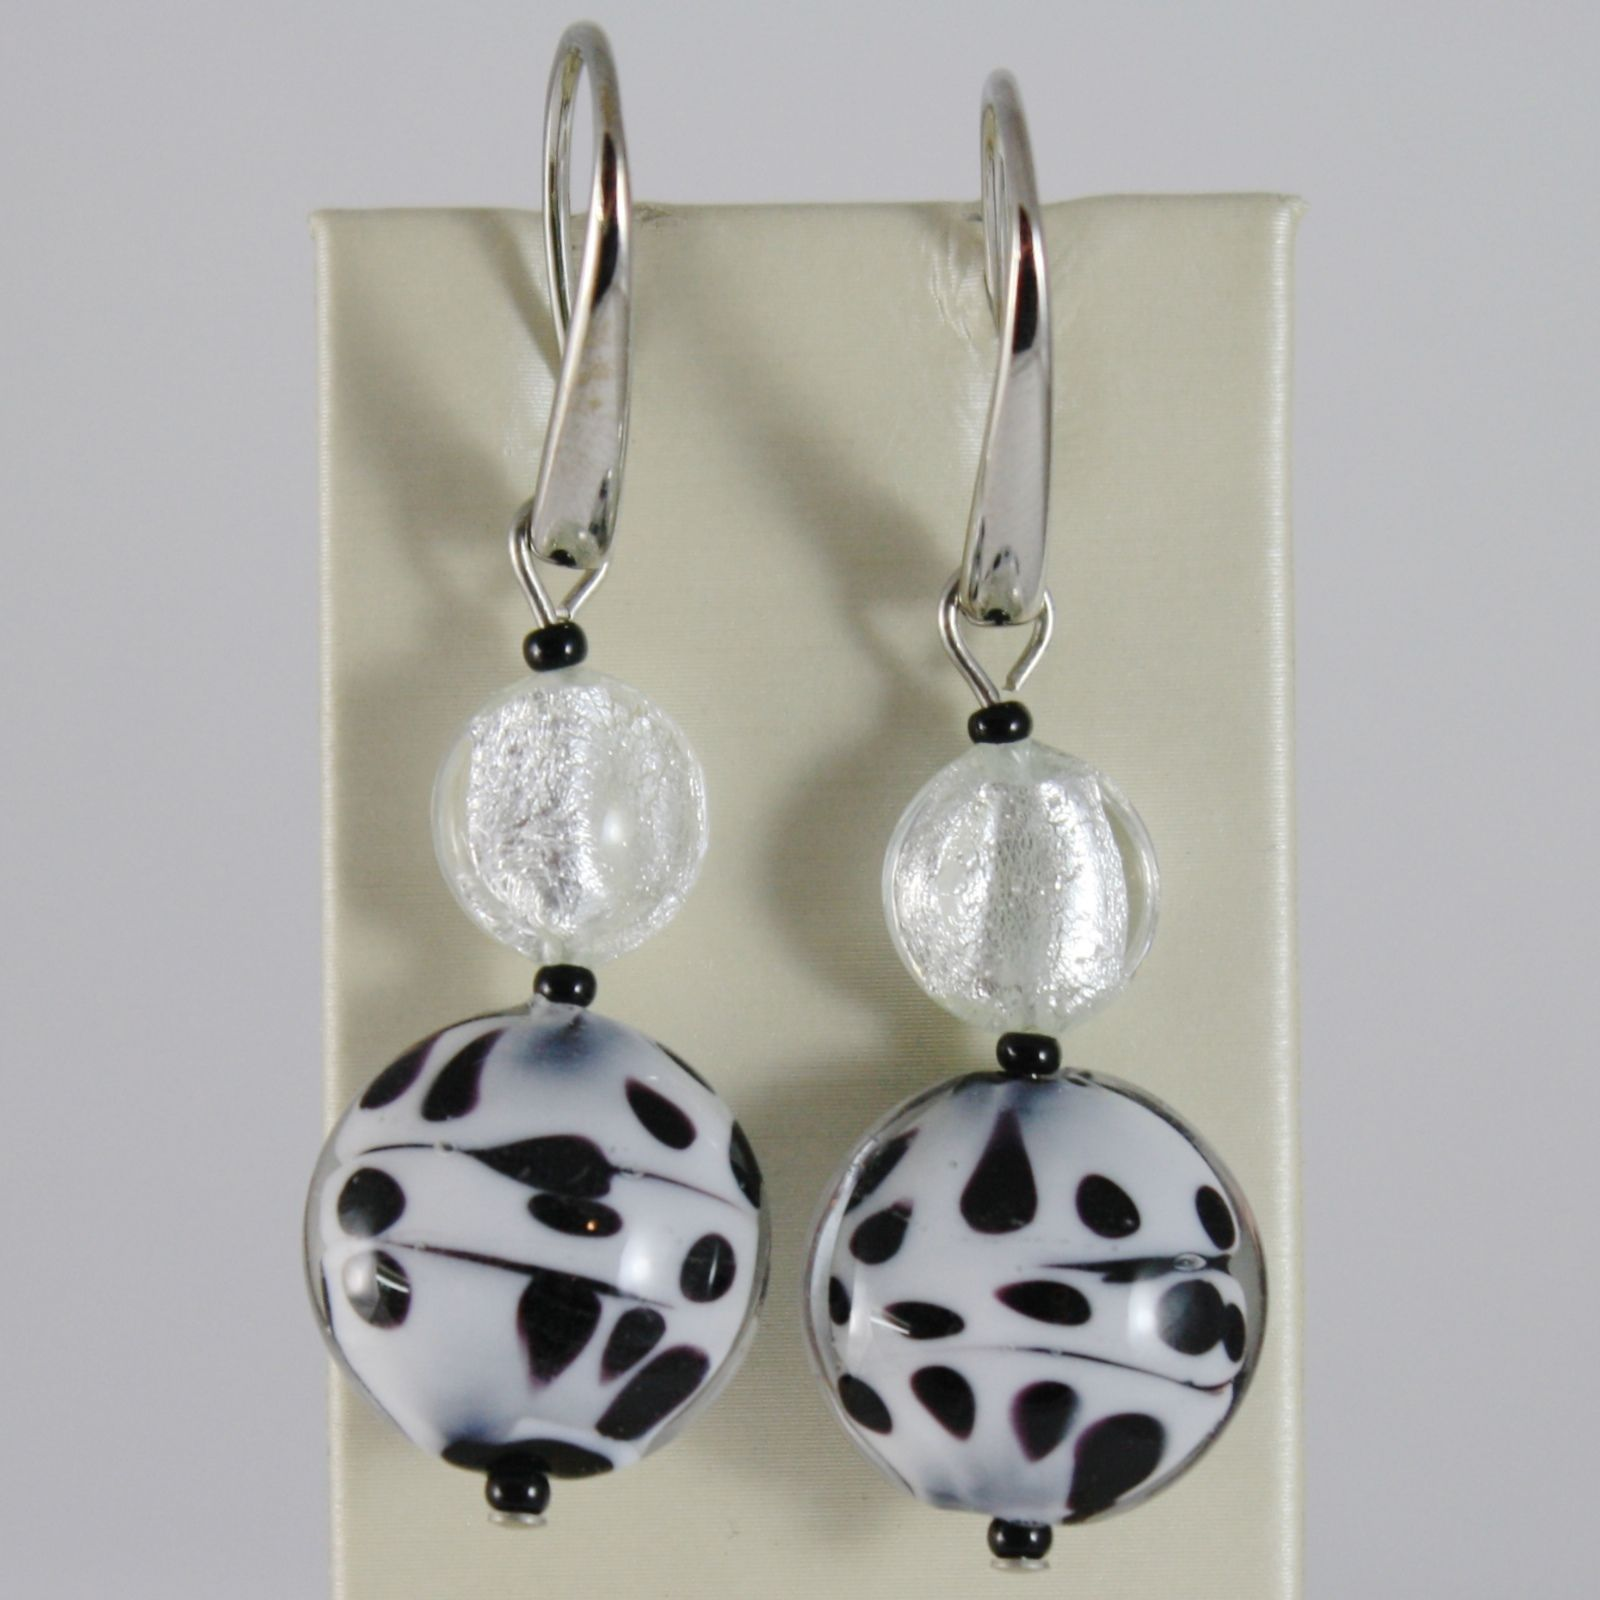 ANTICA MURRINA VENEZIA DISCS AUDREY PENDANT 5 CM EARRINGS BLACK & WHITE POIS